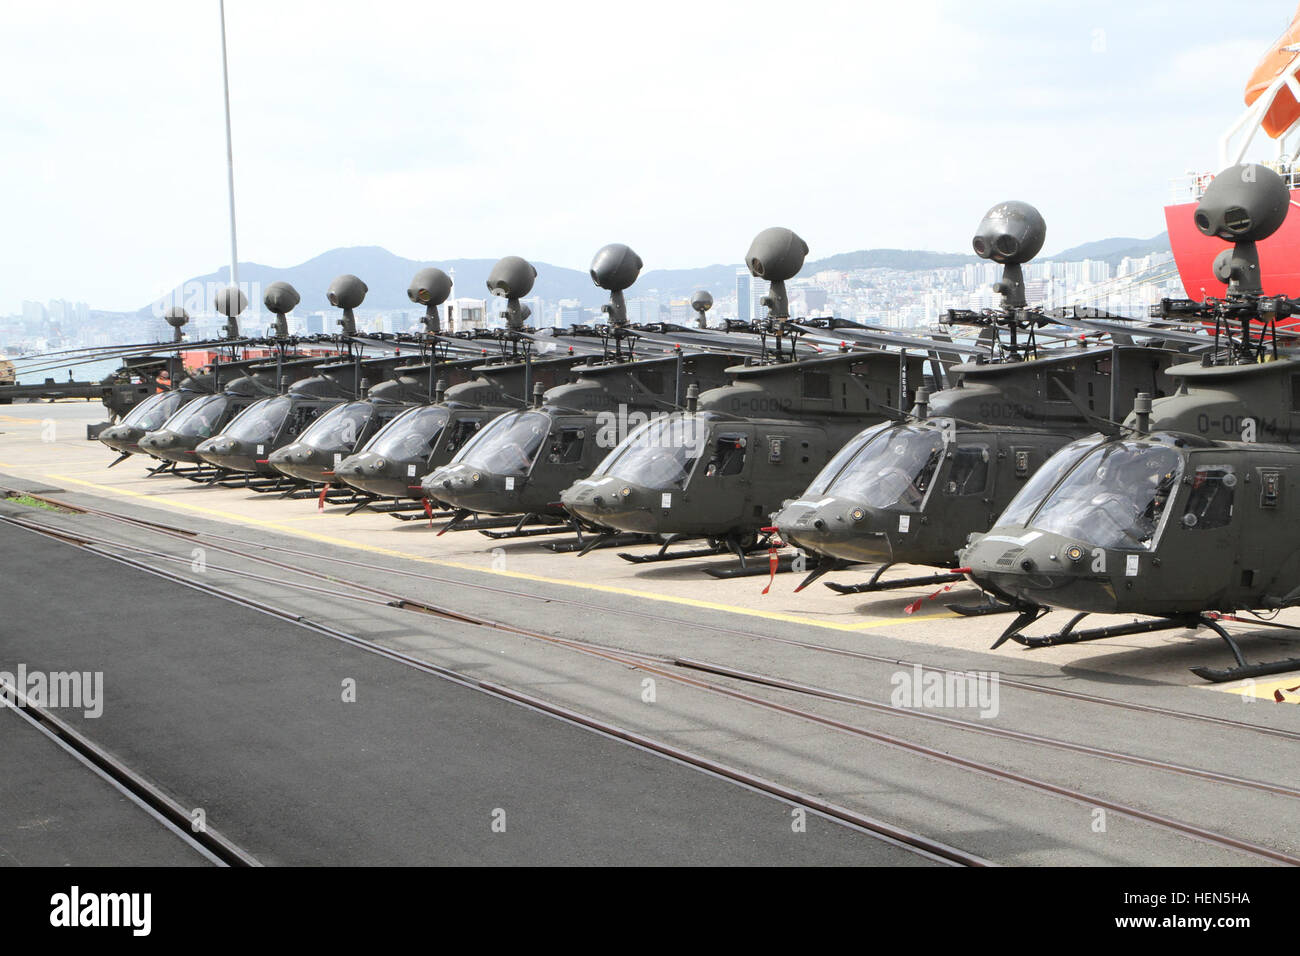 The OH-58D Kiowa Warrior helicopters are staged at Pier 8, Busan, Oct. 10. The 380 soldiers from the 4th Squadron, - Stock Image